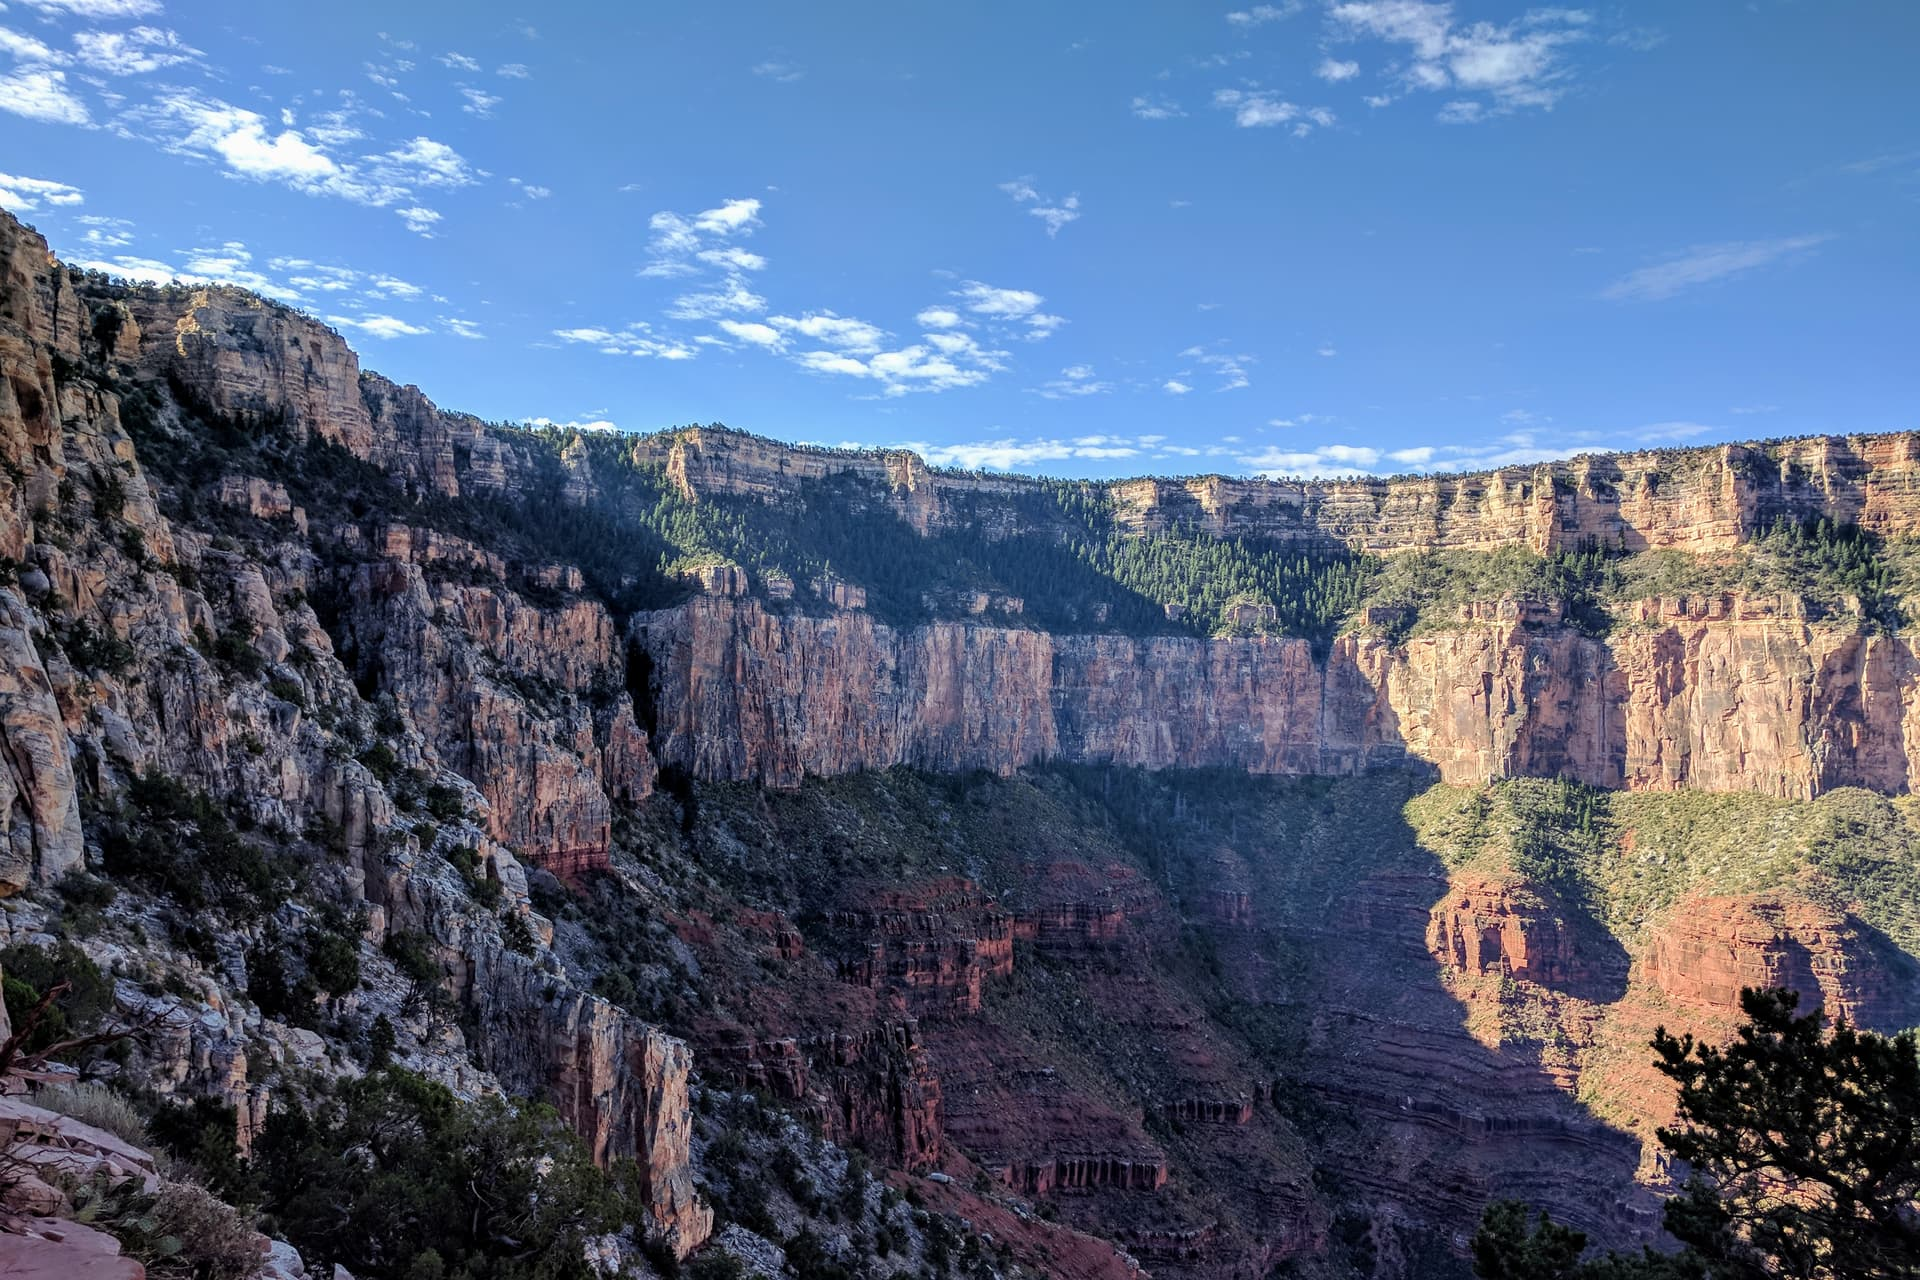 A concave portion of the South Rim of the Grand Canyon, seen from some distance in. Thick bands of red and white rock form steep cliffs linked by only slightly less steep, pine-tree covered slopes.